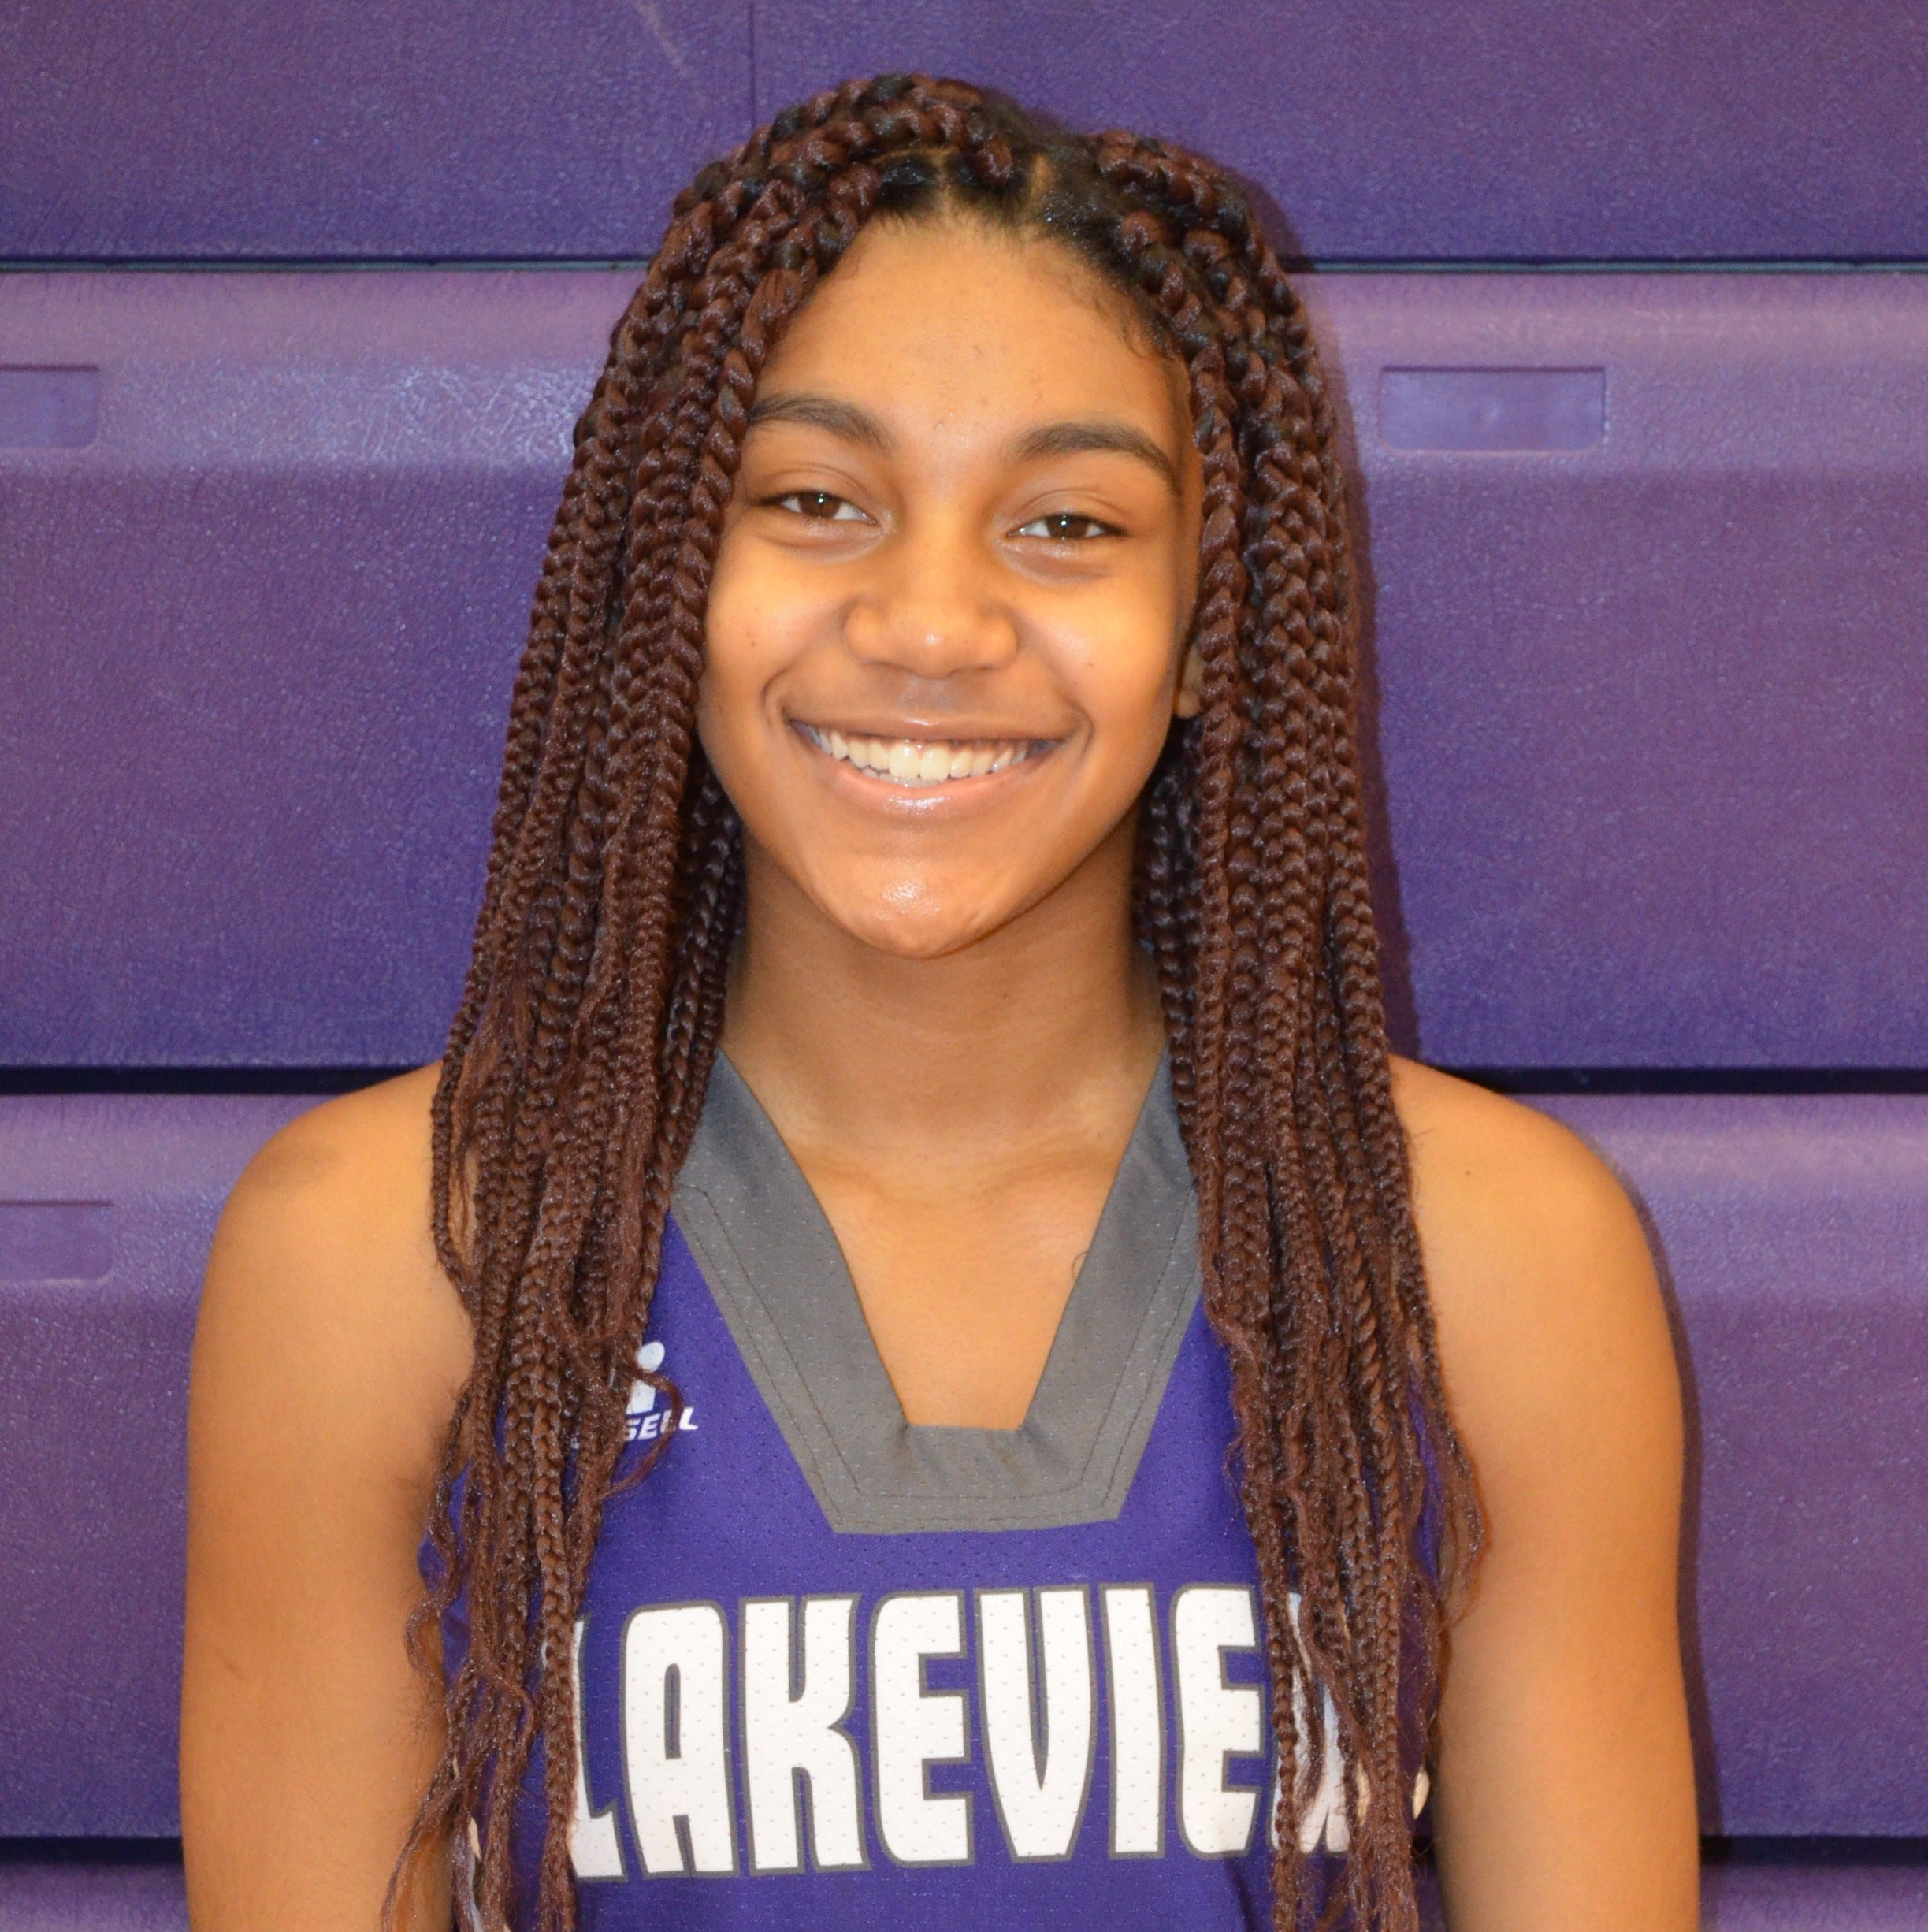 Basketball Notebook: With return of Coach Bussler, inspired Lakeview girls team wins 59-2